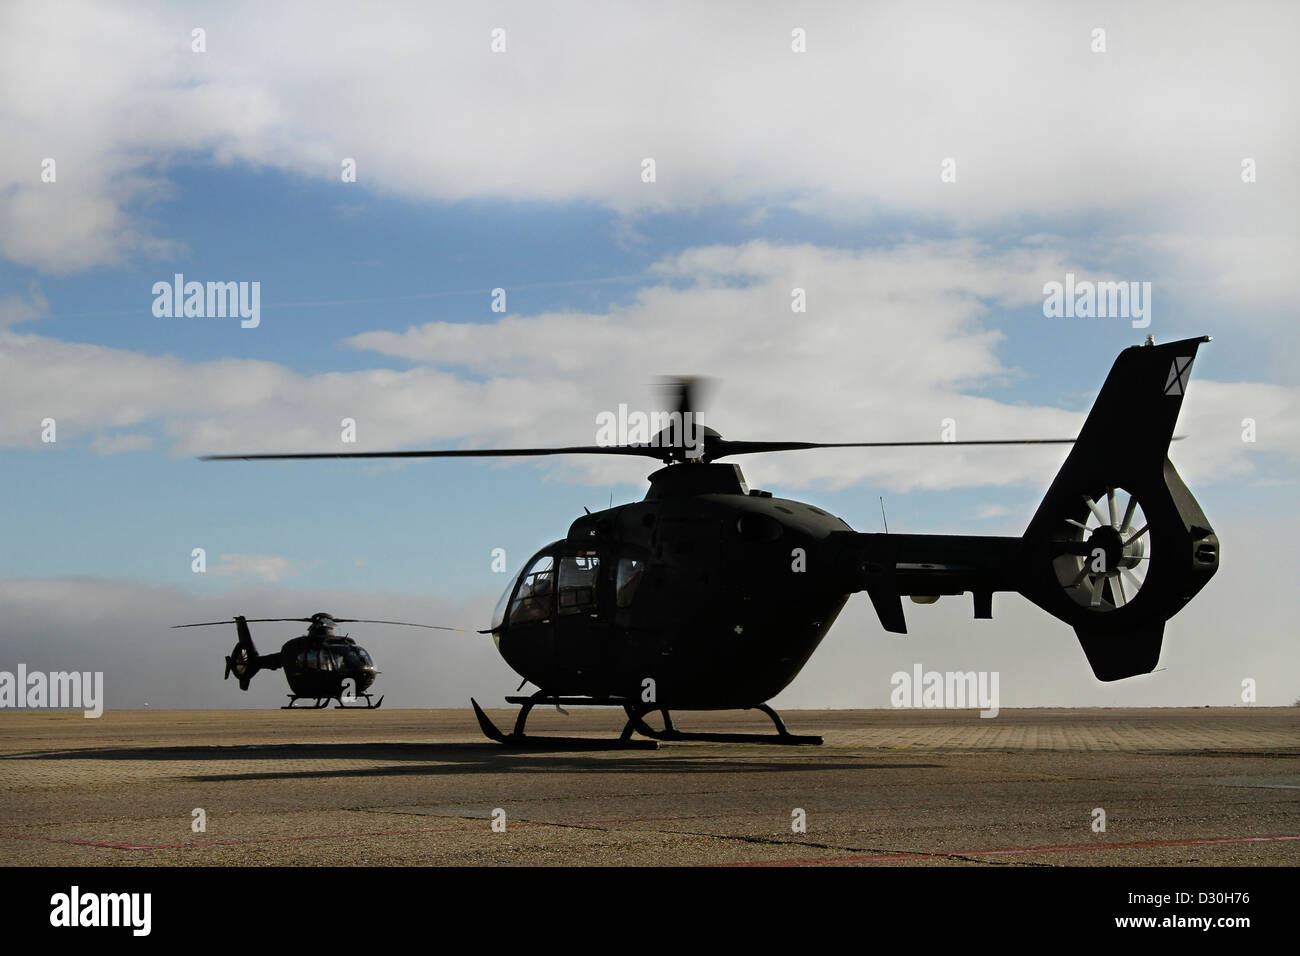 Silhouette of two military helicopter - Stock Image